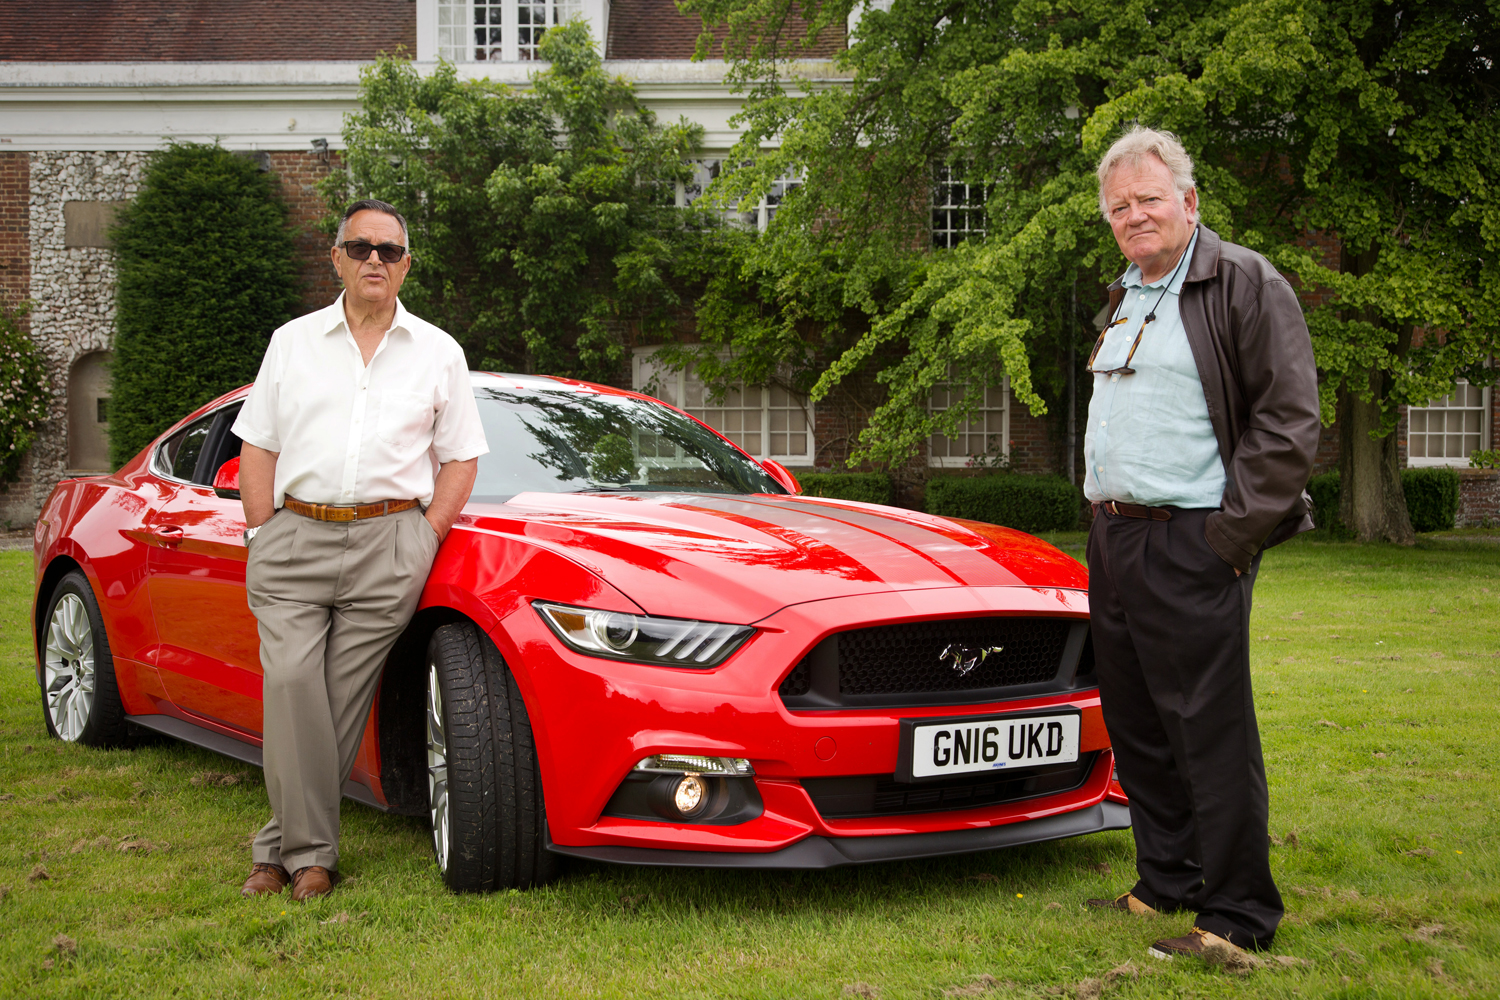 The Must Expensive Car In The World >> Ford Mustang 5.0 V8 GT review